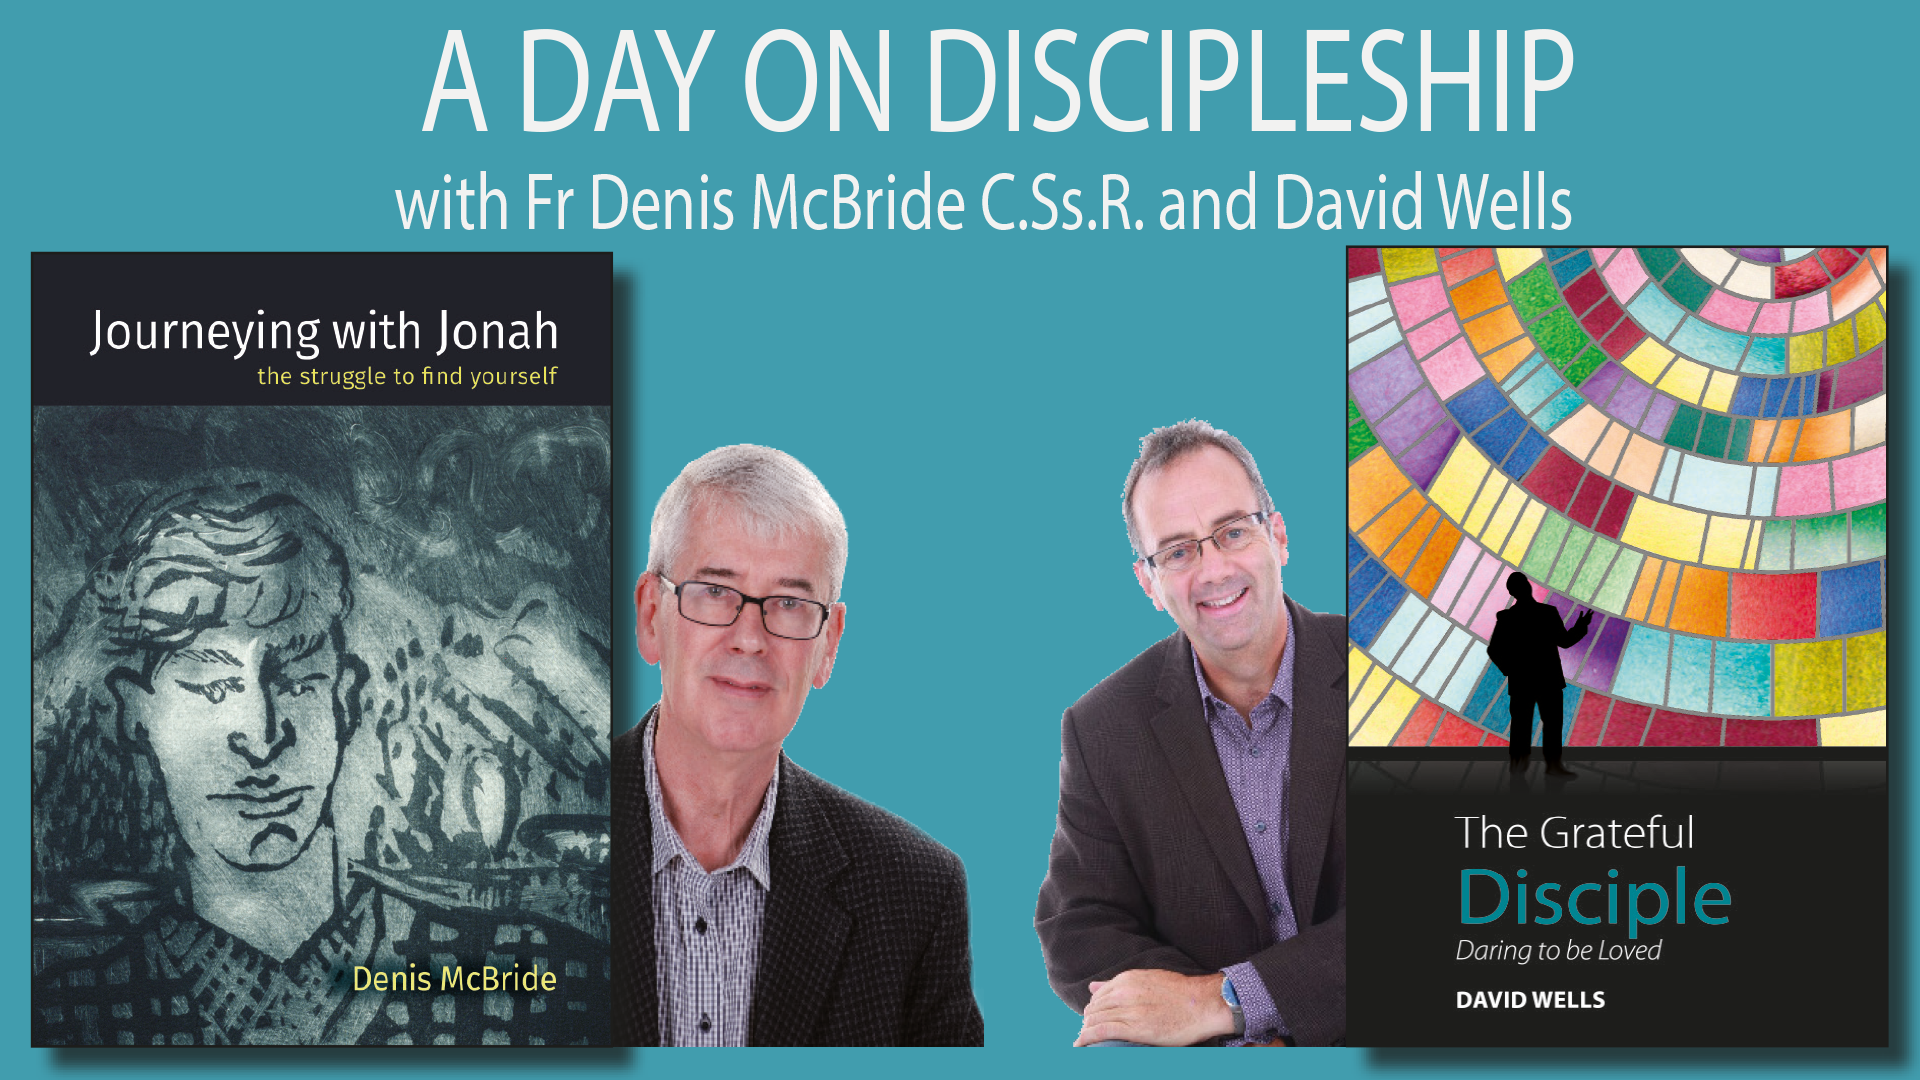 A Day on Discipleship with Fr Denis McBride C.Ss.R. and David Wells